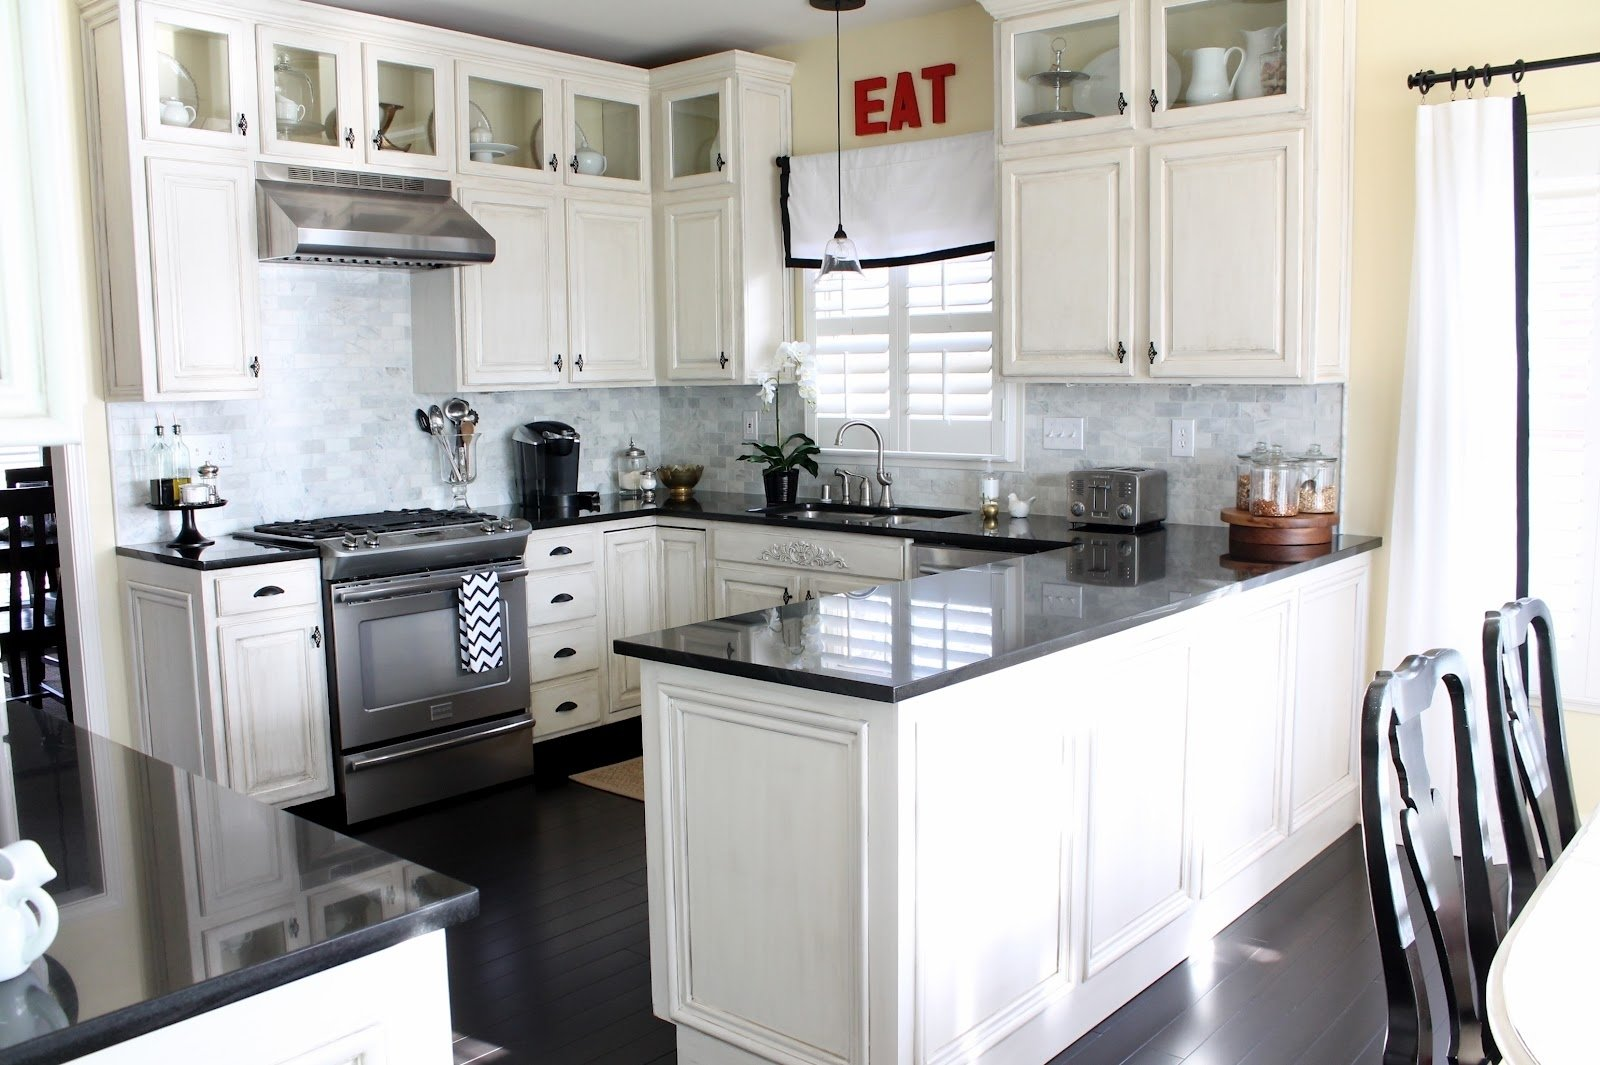 10 Gorgeous Kitchen Ideas With White Cabinets home furnitures sets paint colors for kitchens with white cabinets 2020